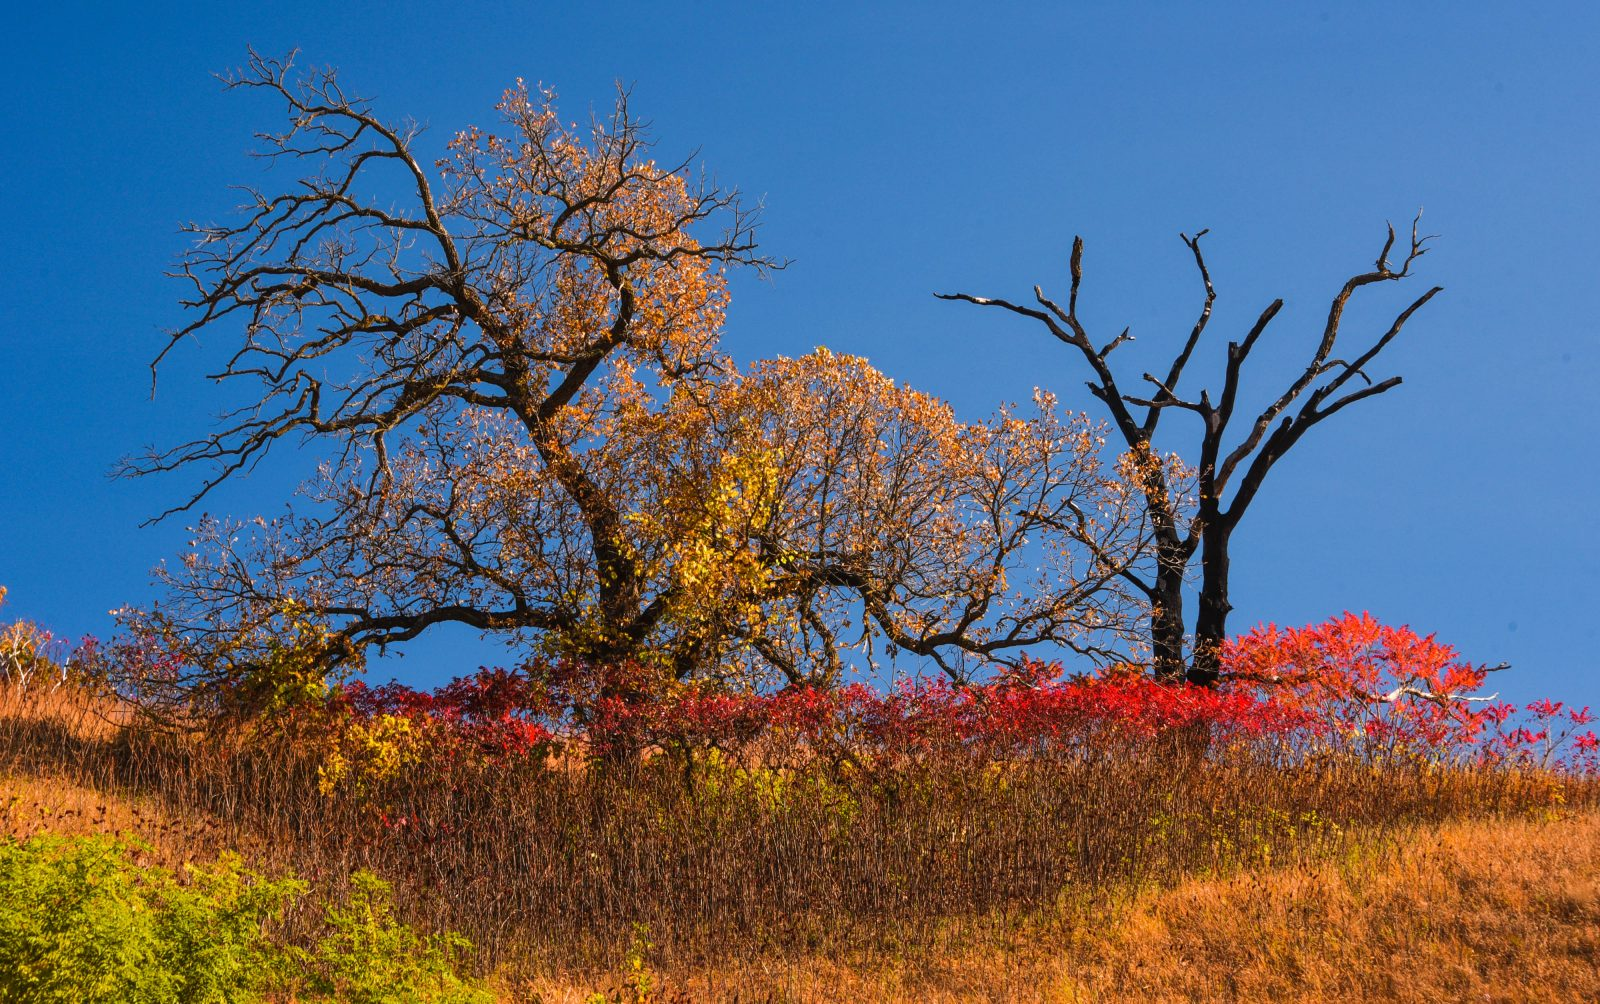 Autumn on Top of the Hill